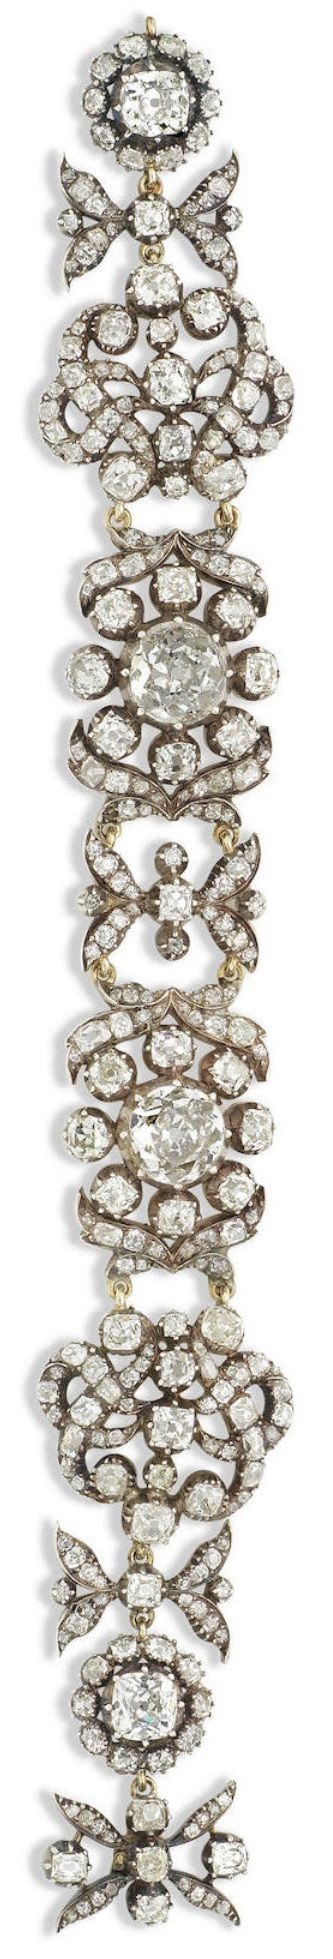 An antique diamond bracelet, 19th century. Composed of four highly stylised floral clusters, the two principal old brilliant-cut diamonds, connected by eternal knot and foliate motifs, set throughout with old brilliant and cushion-shaped diamonds, mounted in silver and gold, composite, the elements of this bracelet are probably circa 1830. #antique #bracelet